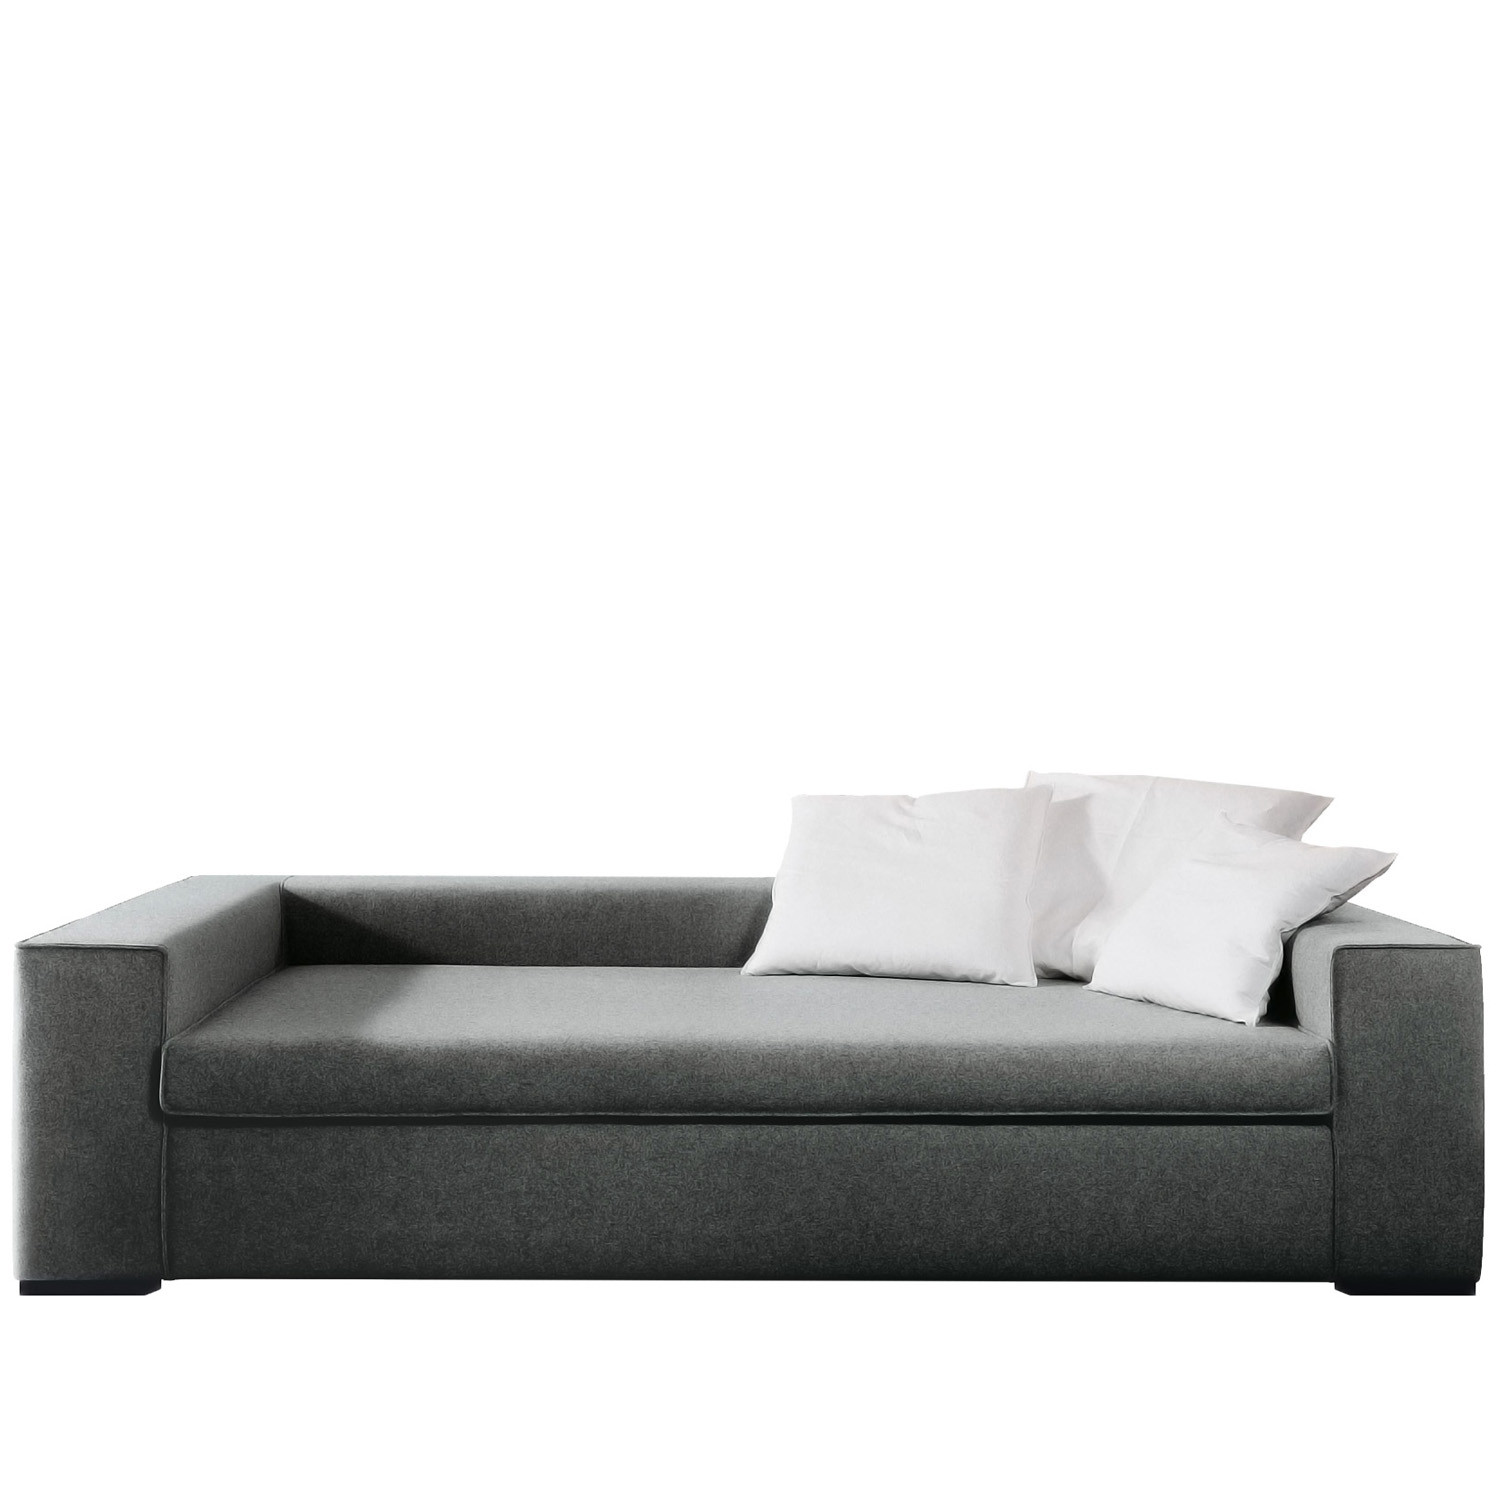 Serie 3080 Reception Sofa